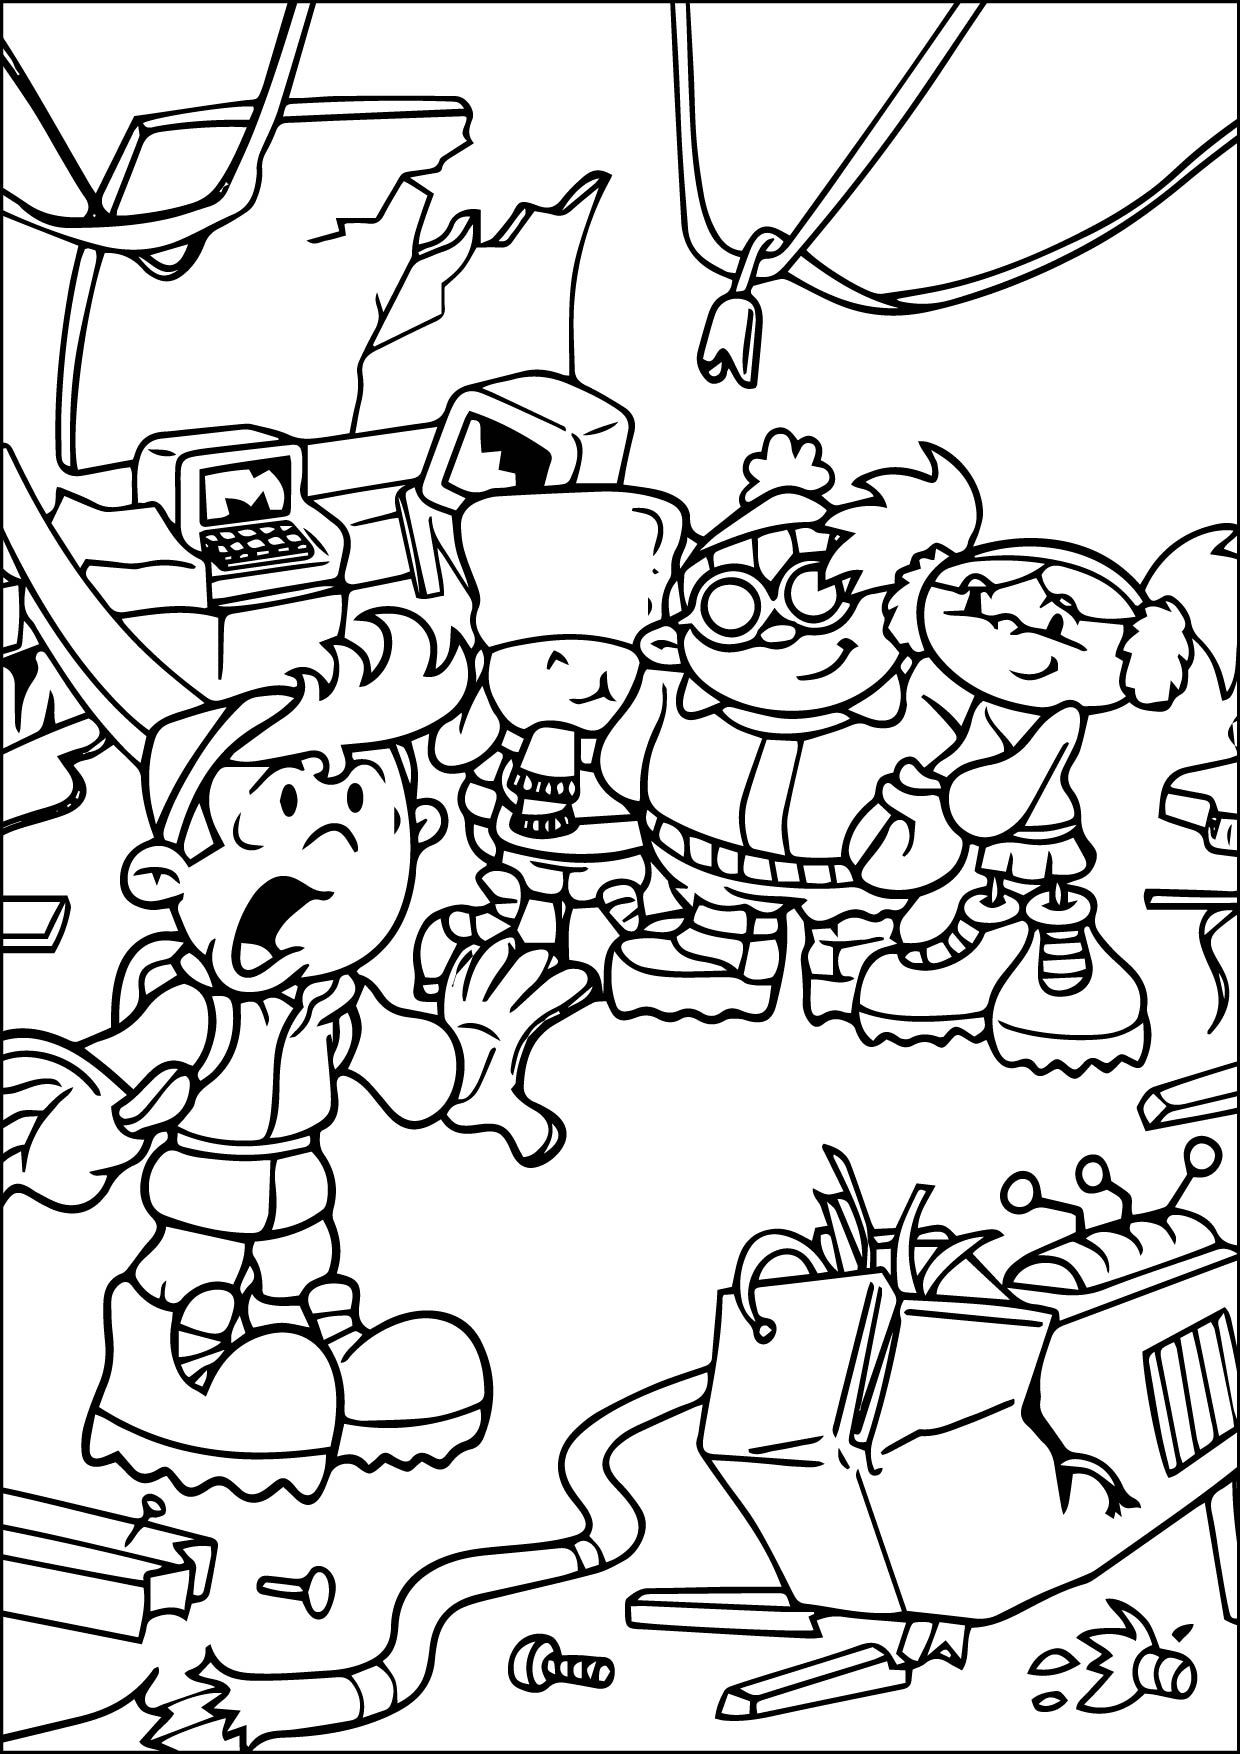 Cool coloring page check more at